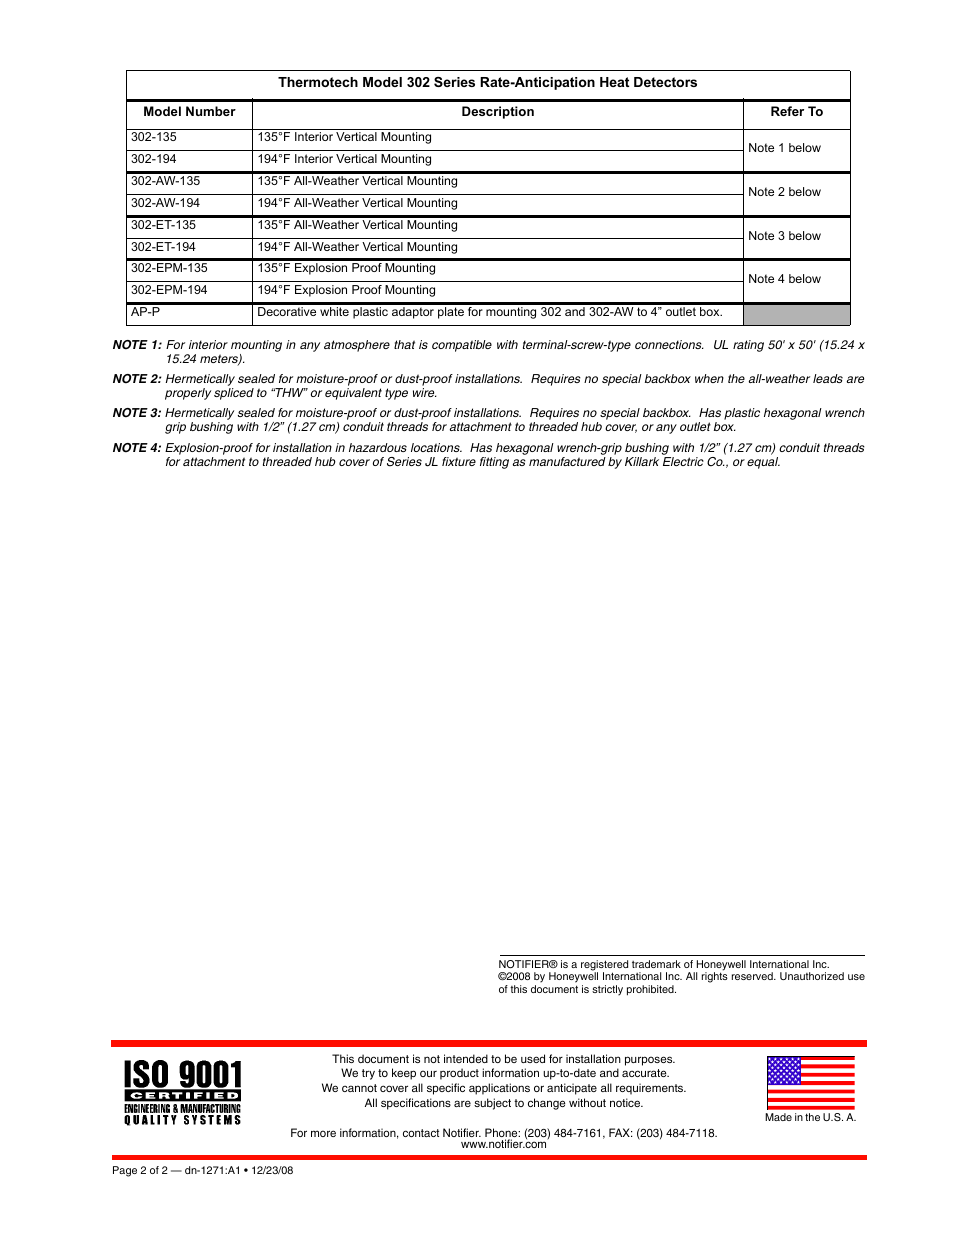 Notifier 302 Series User Manual | Page 2 / 10 | Original mode